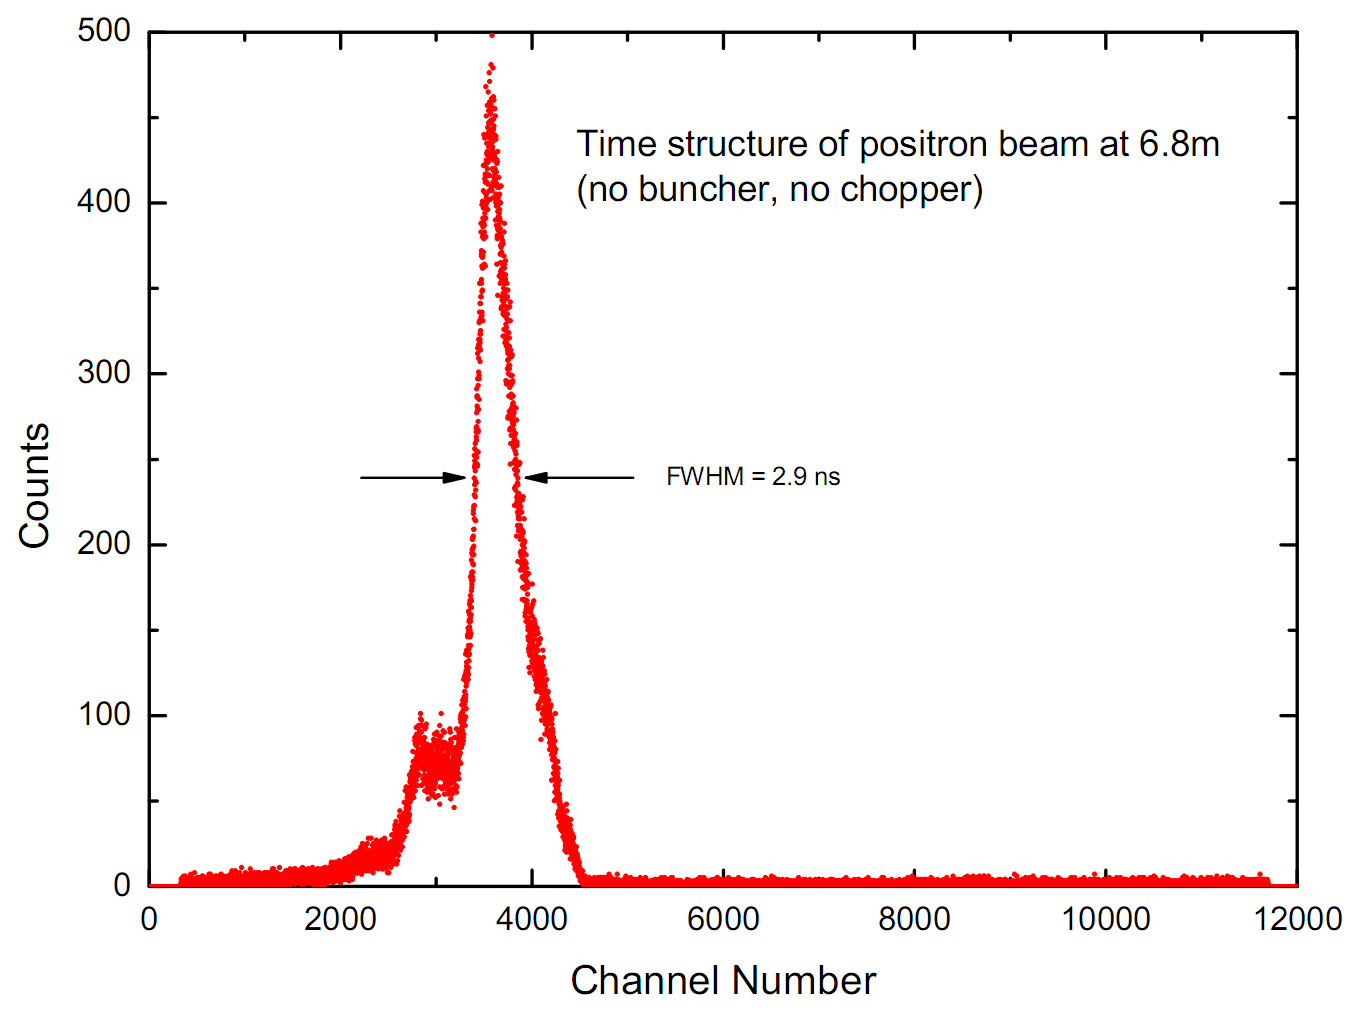 2009-09-15_20 This is the time structure of unchopped, unbunched original positron beam at position 6.8m from moderator. 50% of positrons are in a 3ns window. Uncorrelated background was only 3 % in whole area.